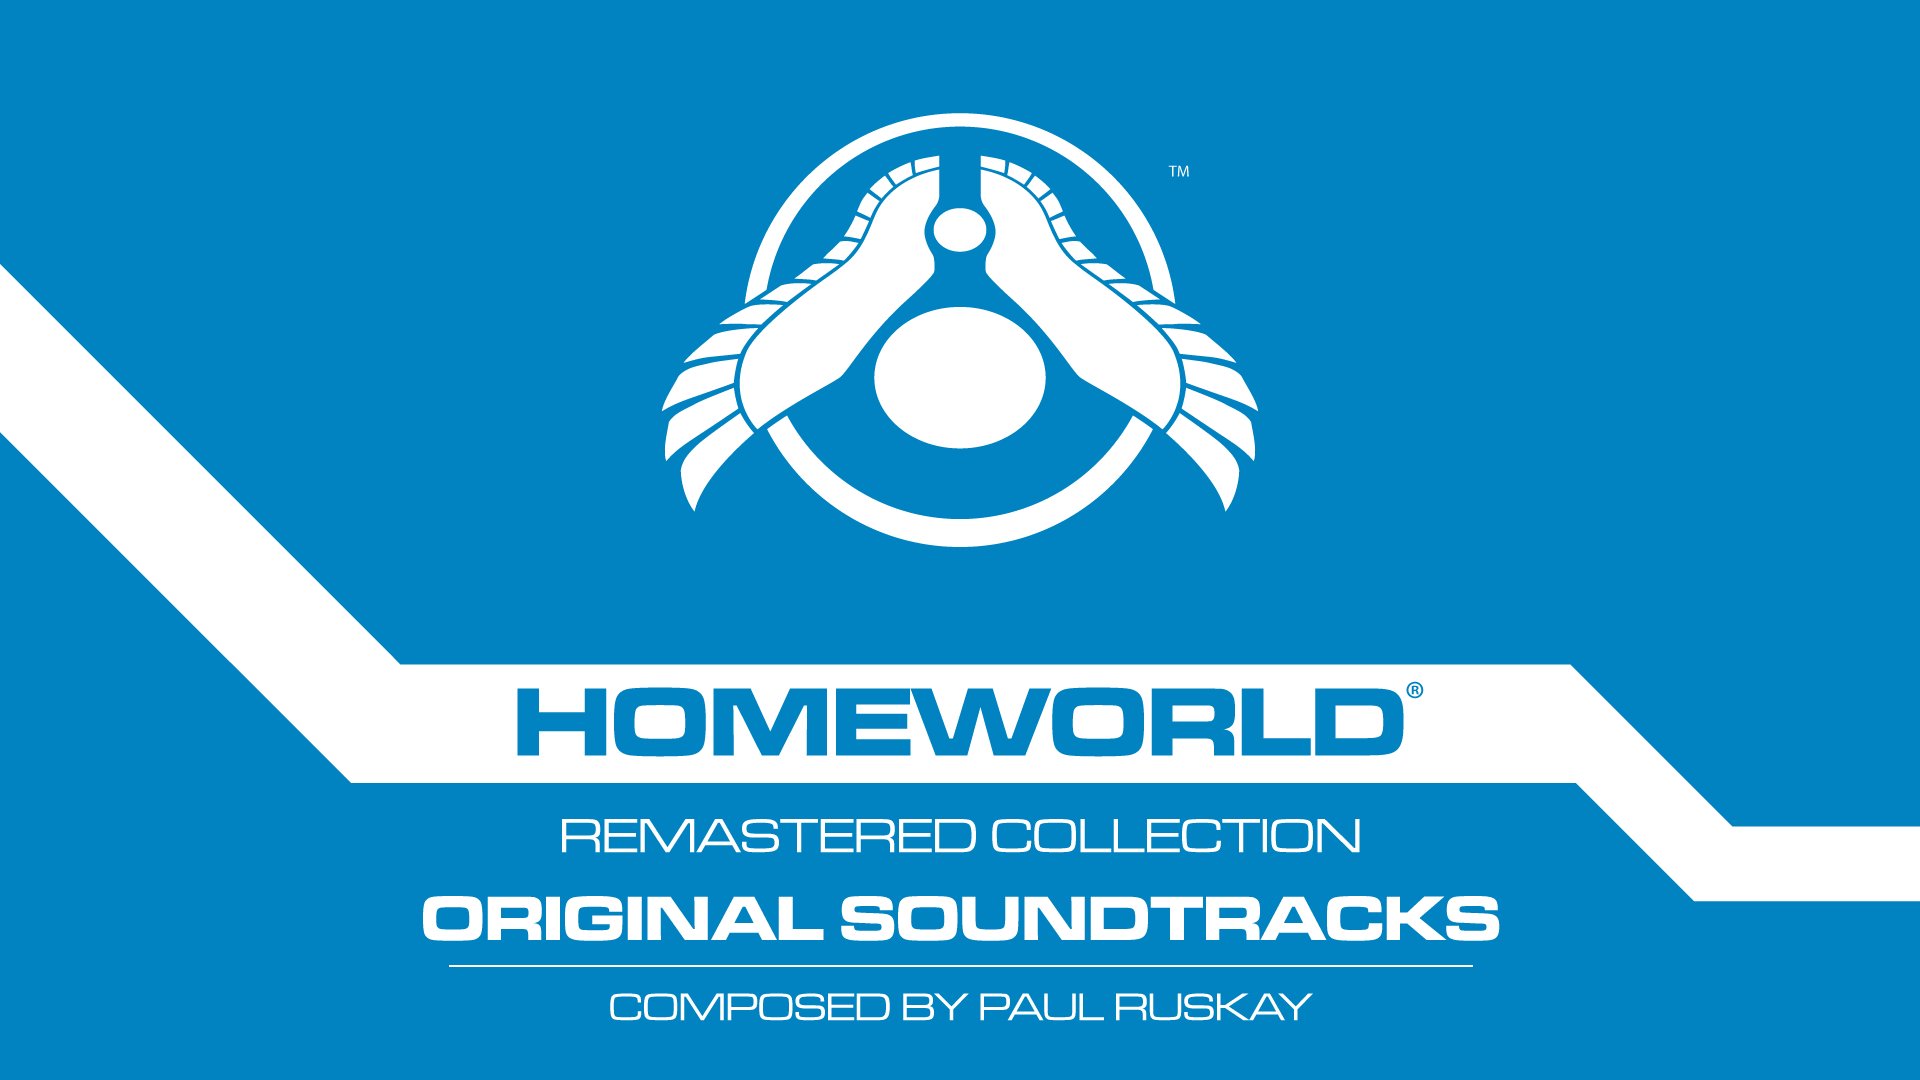 Homeworld Remastered Soundtracks - Paul Ruskay